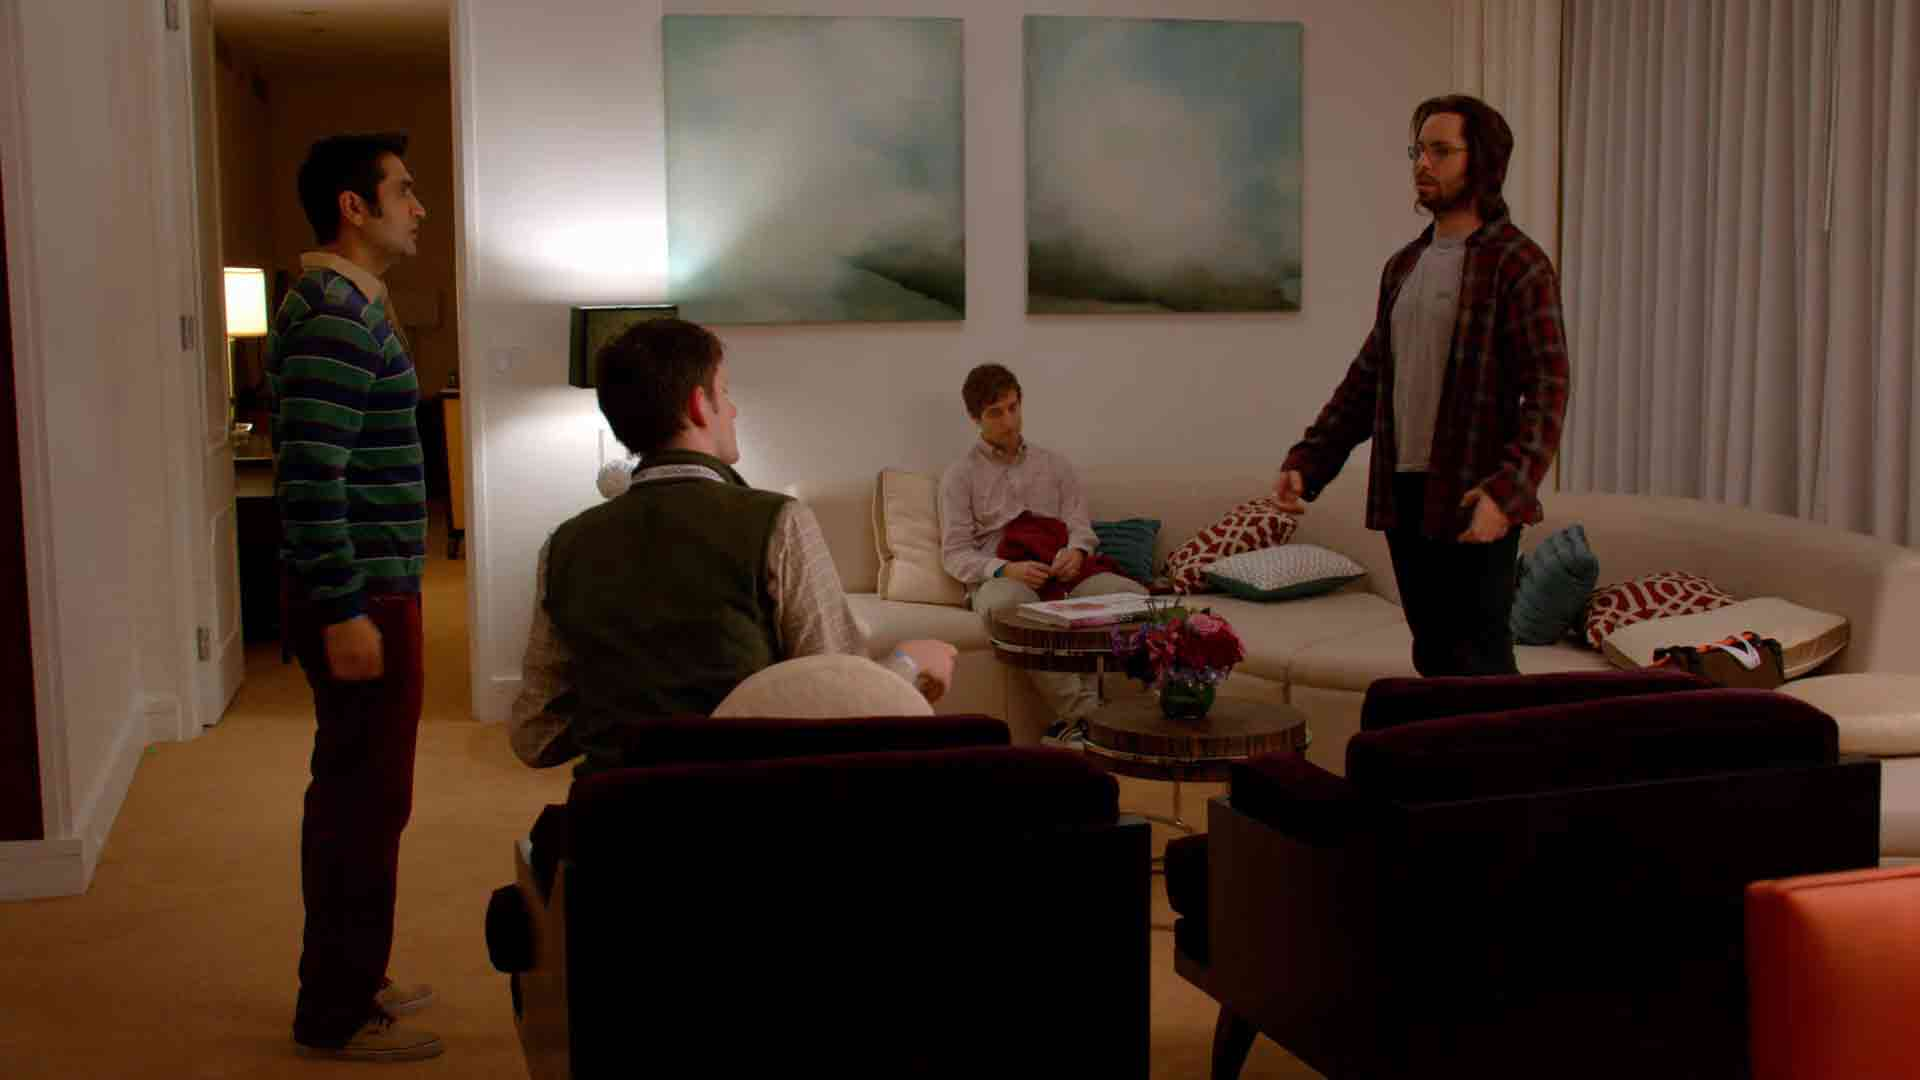 Silicon Valley S1E8 Middle Out Discussion